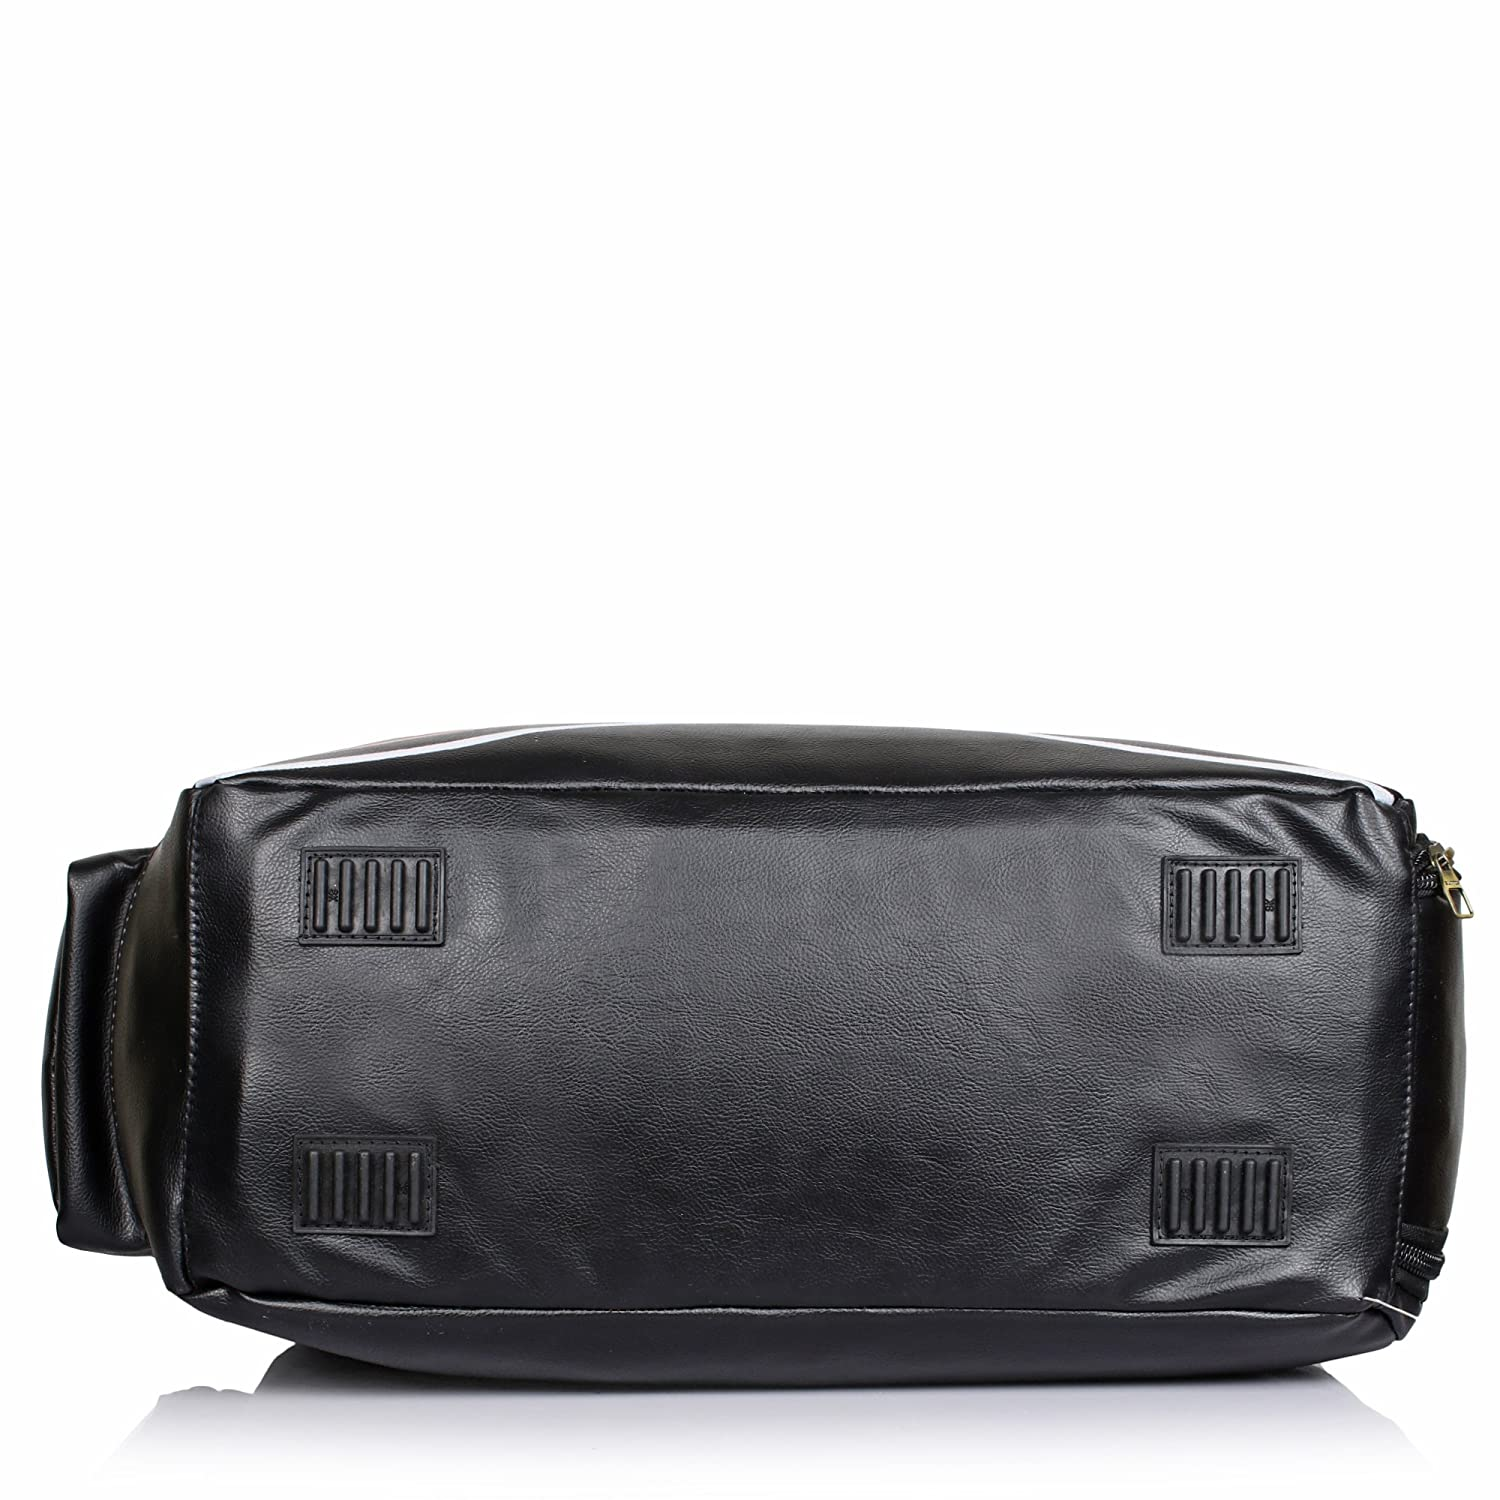 d2a19f9f85b4 Suntop Diablo Faux Leather Duffel Bag for Travel Gym Bag with Shoe  Compartment (Black)  Amazon.in  Bags